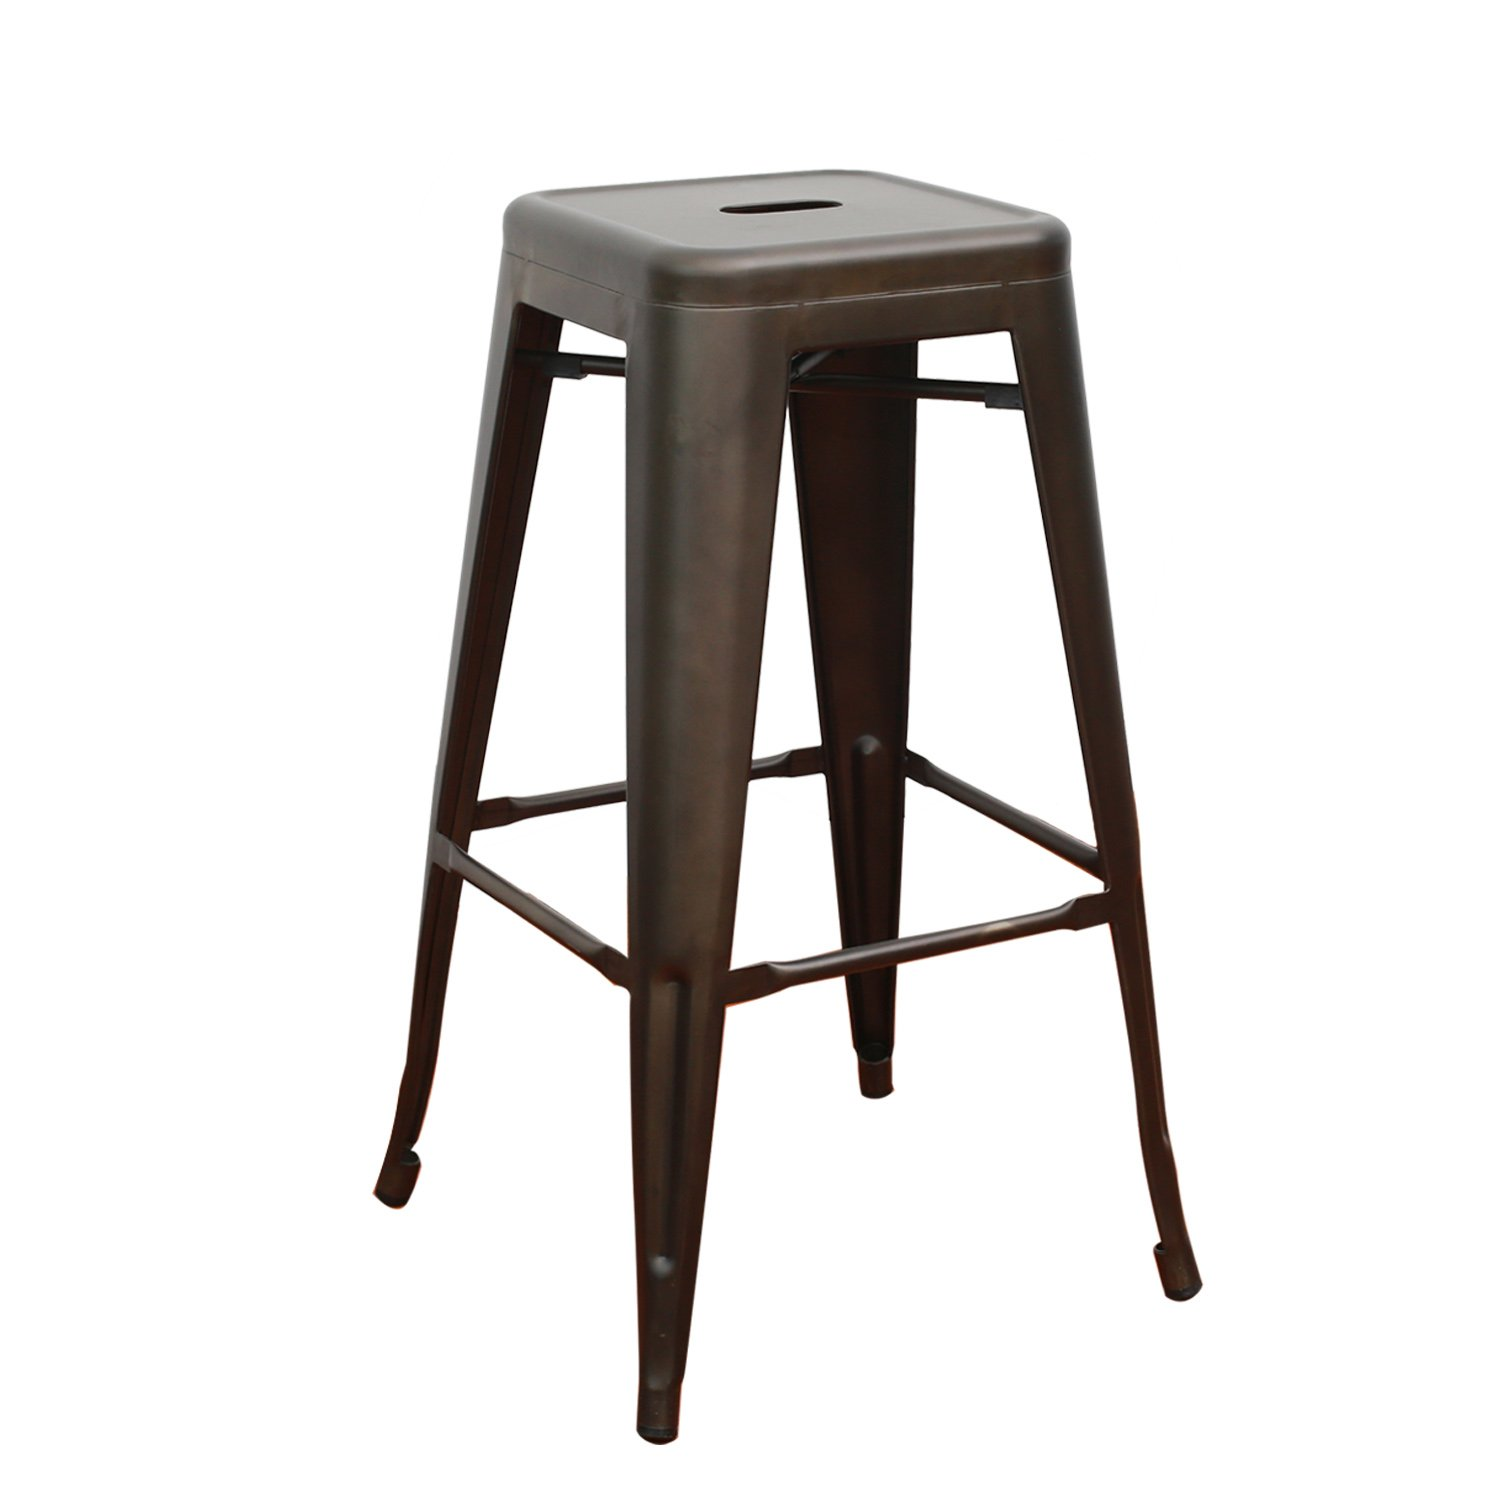 EDECO 30-inch Tolix Style Bar Stools Backless Metal Chair Set of 4 Bronze Color for Living Room Indoor Outdoor Counter Stools